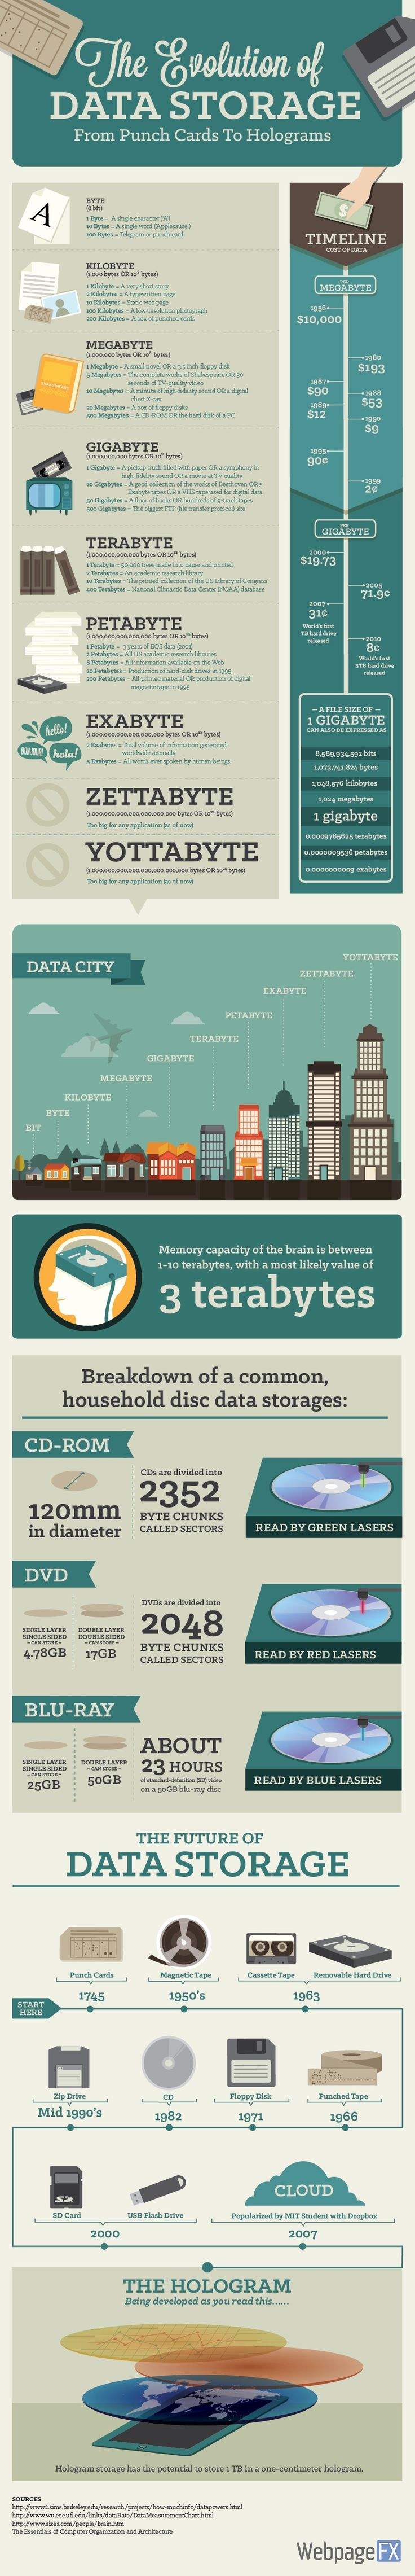 The Evolution of Data Storage [Infographic]